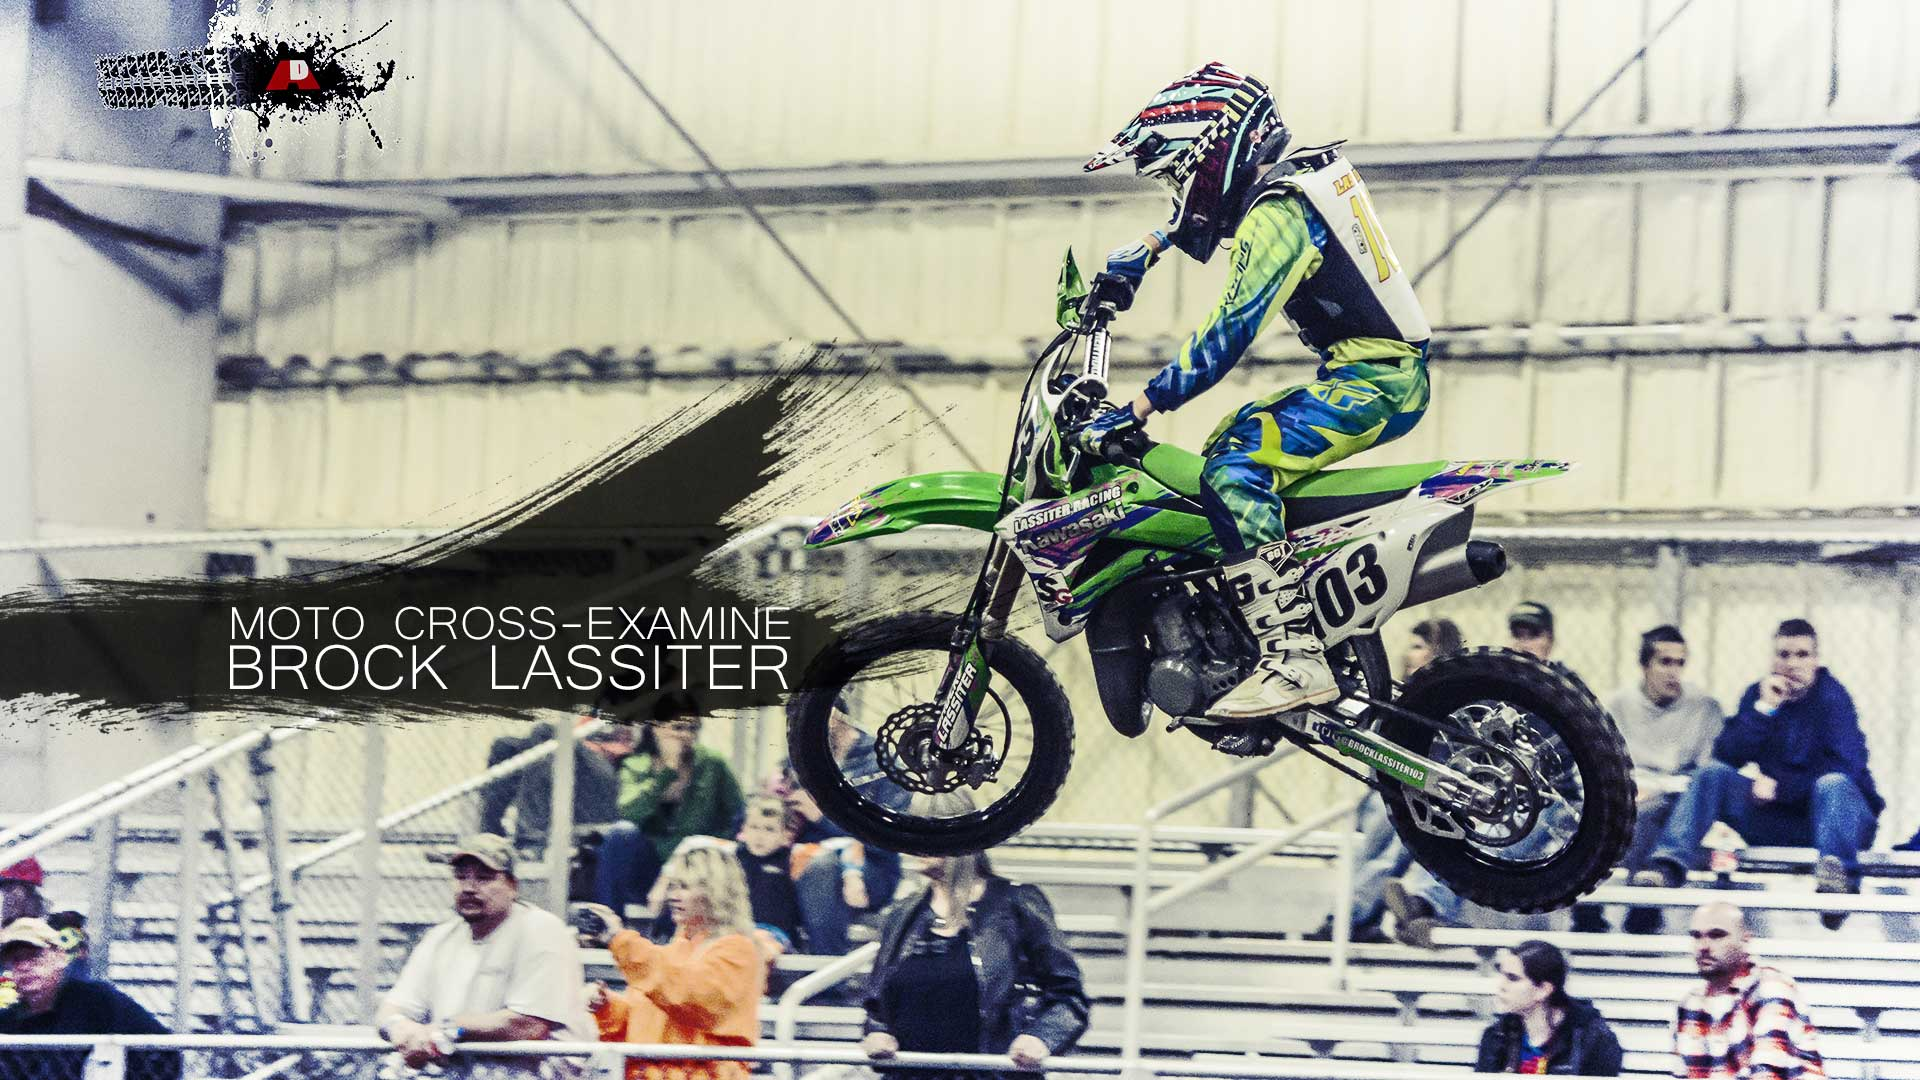 Moto Cross-Examine: Brock Lassiter